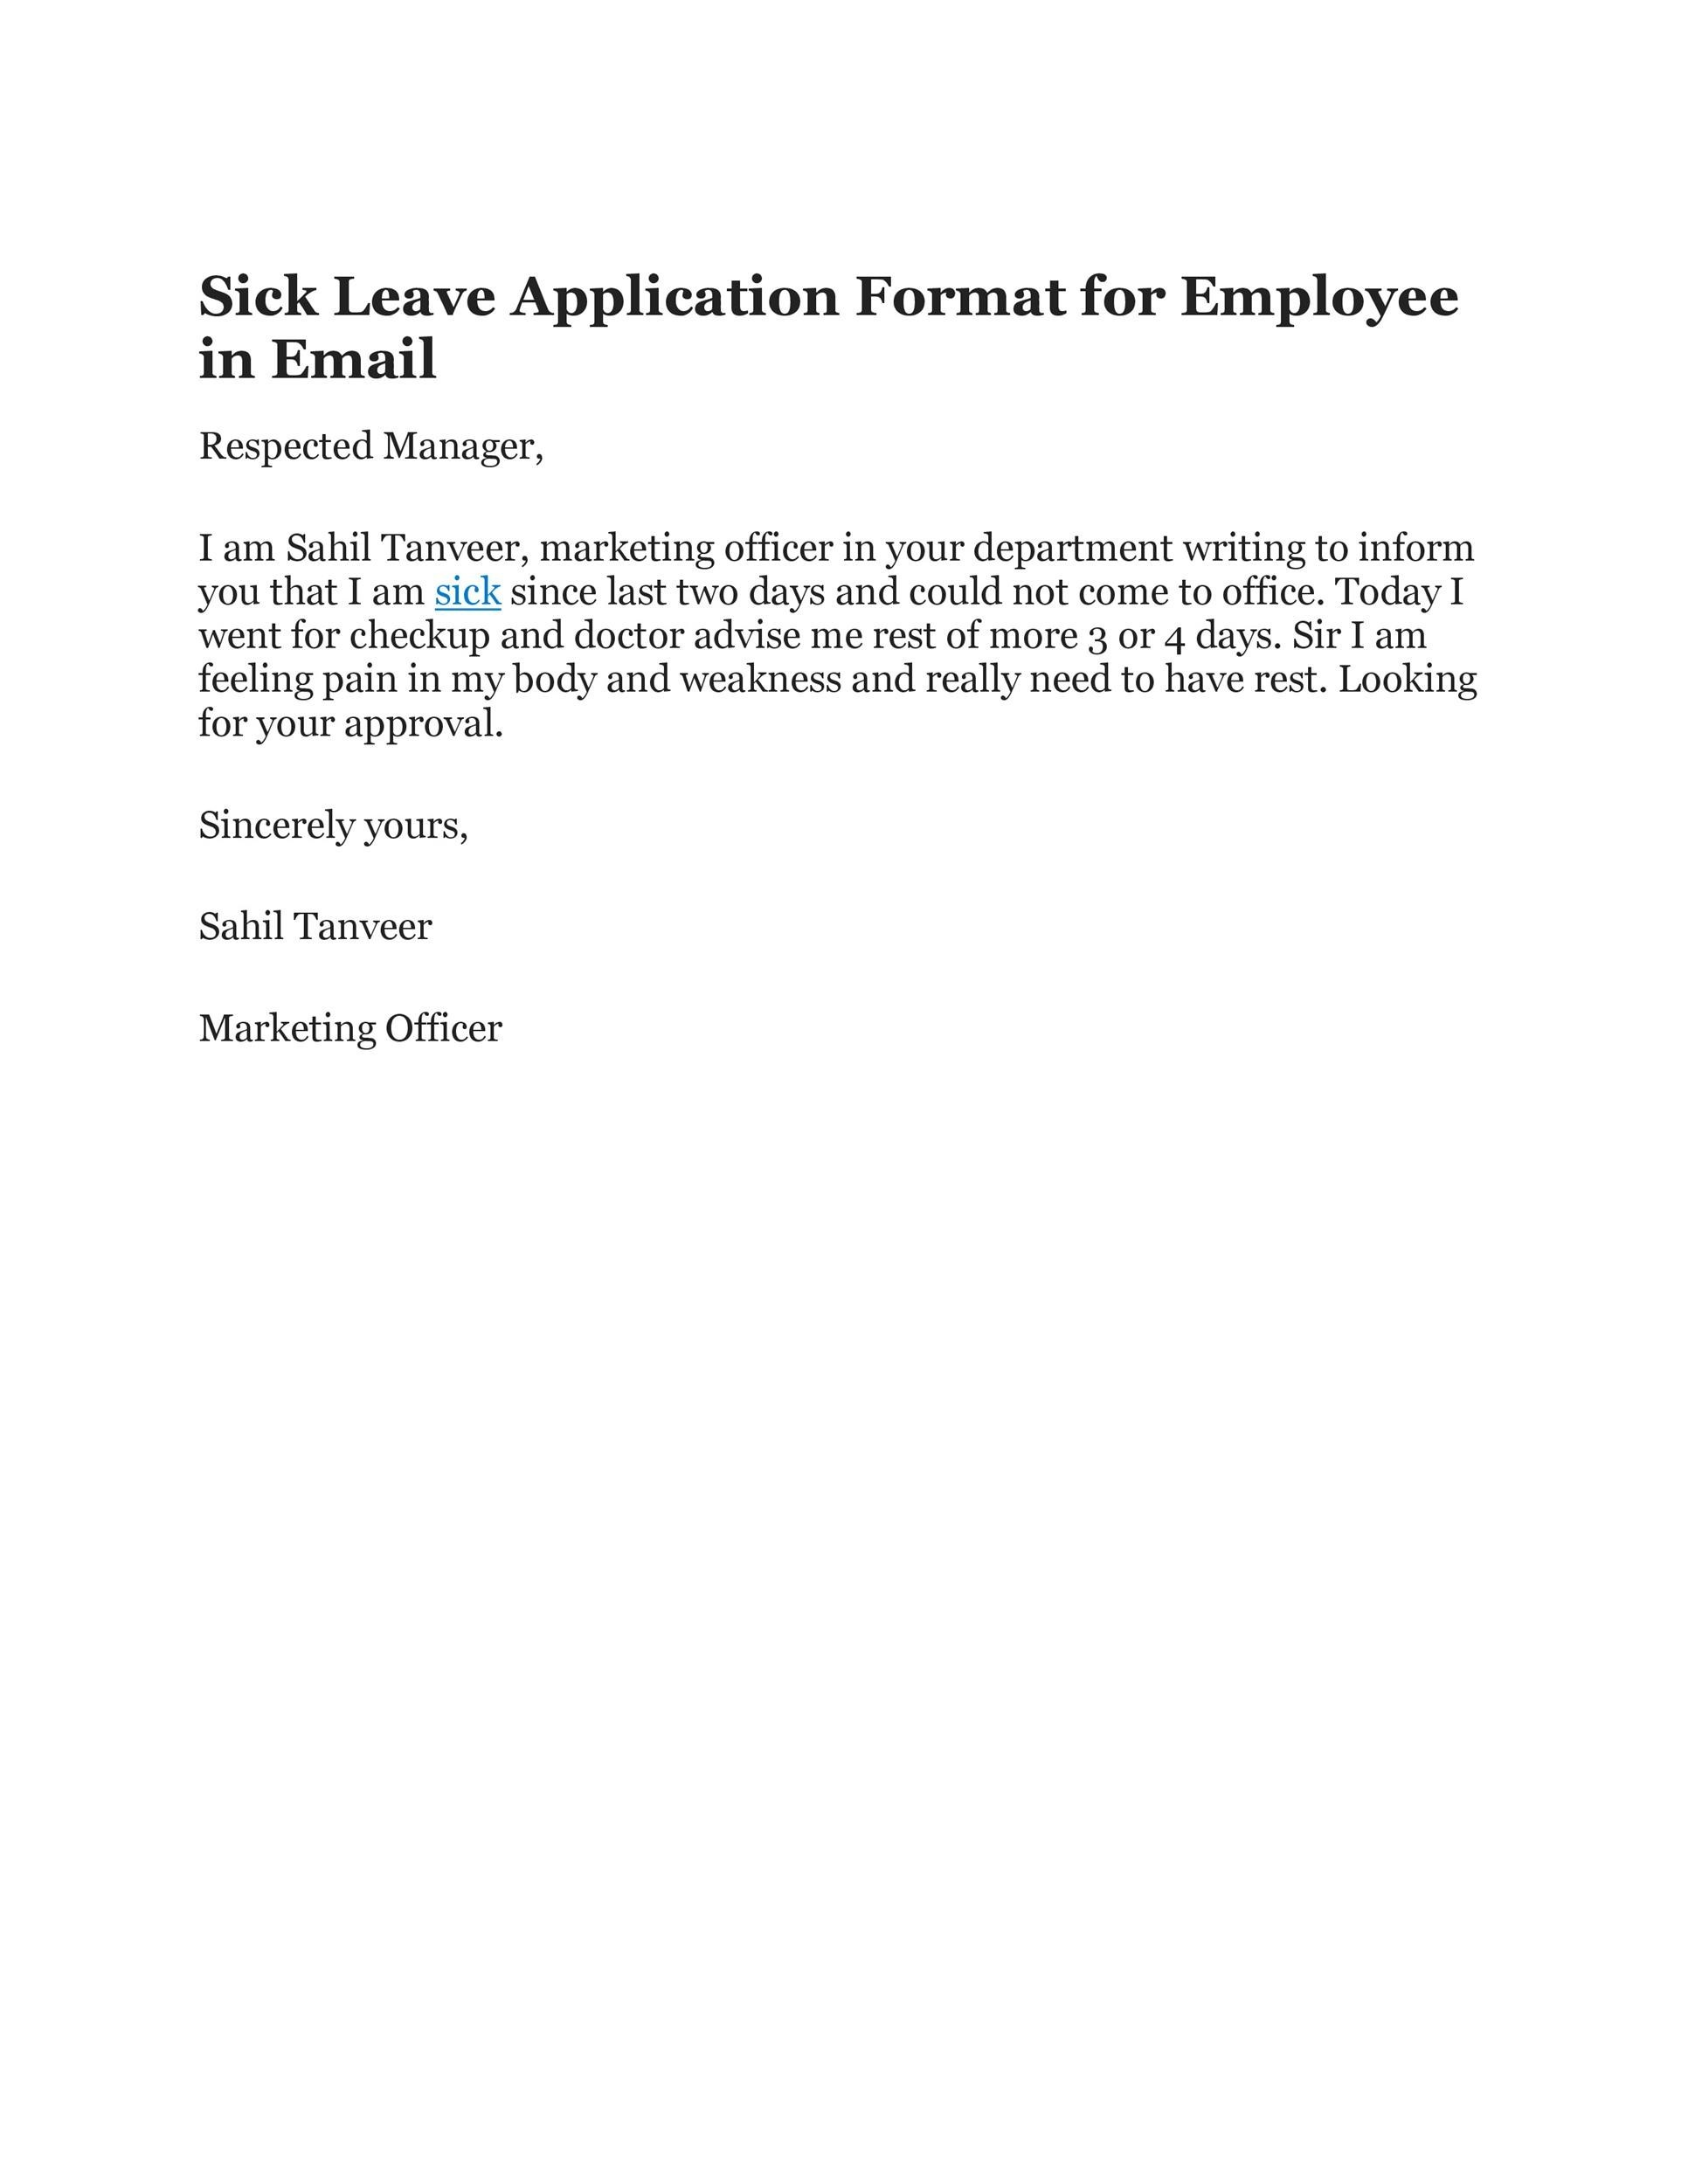 Sick Leave Letter To Manager from templatelab.com